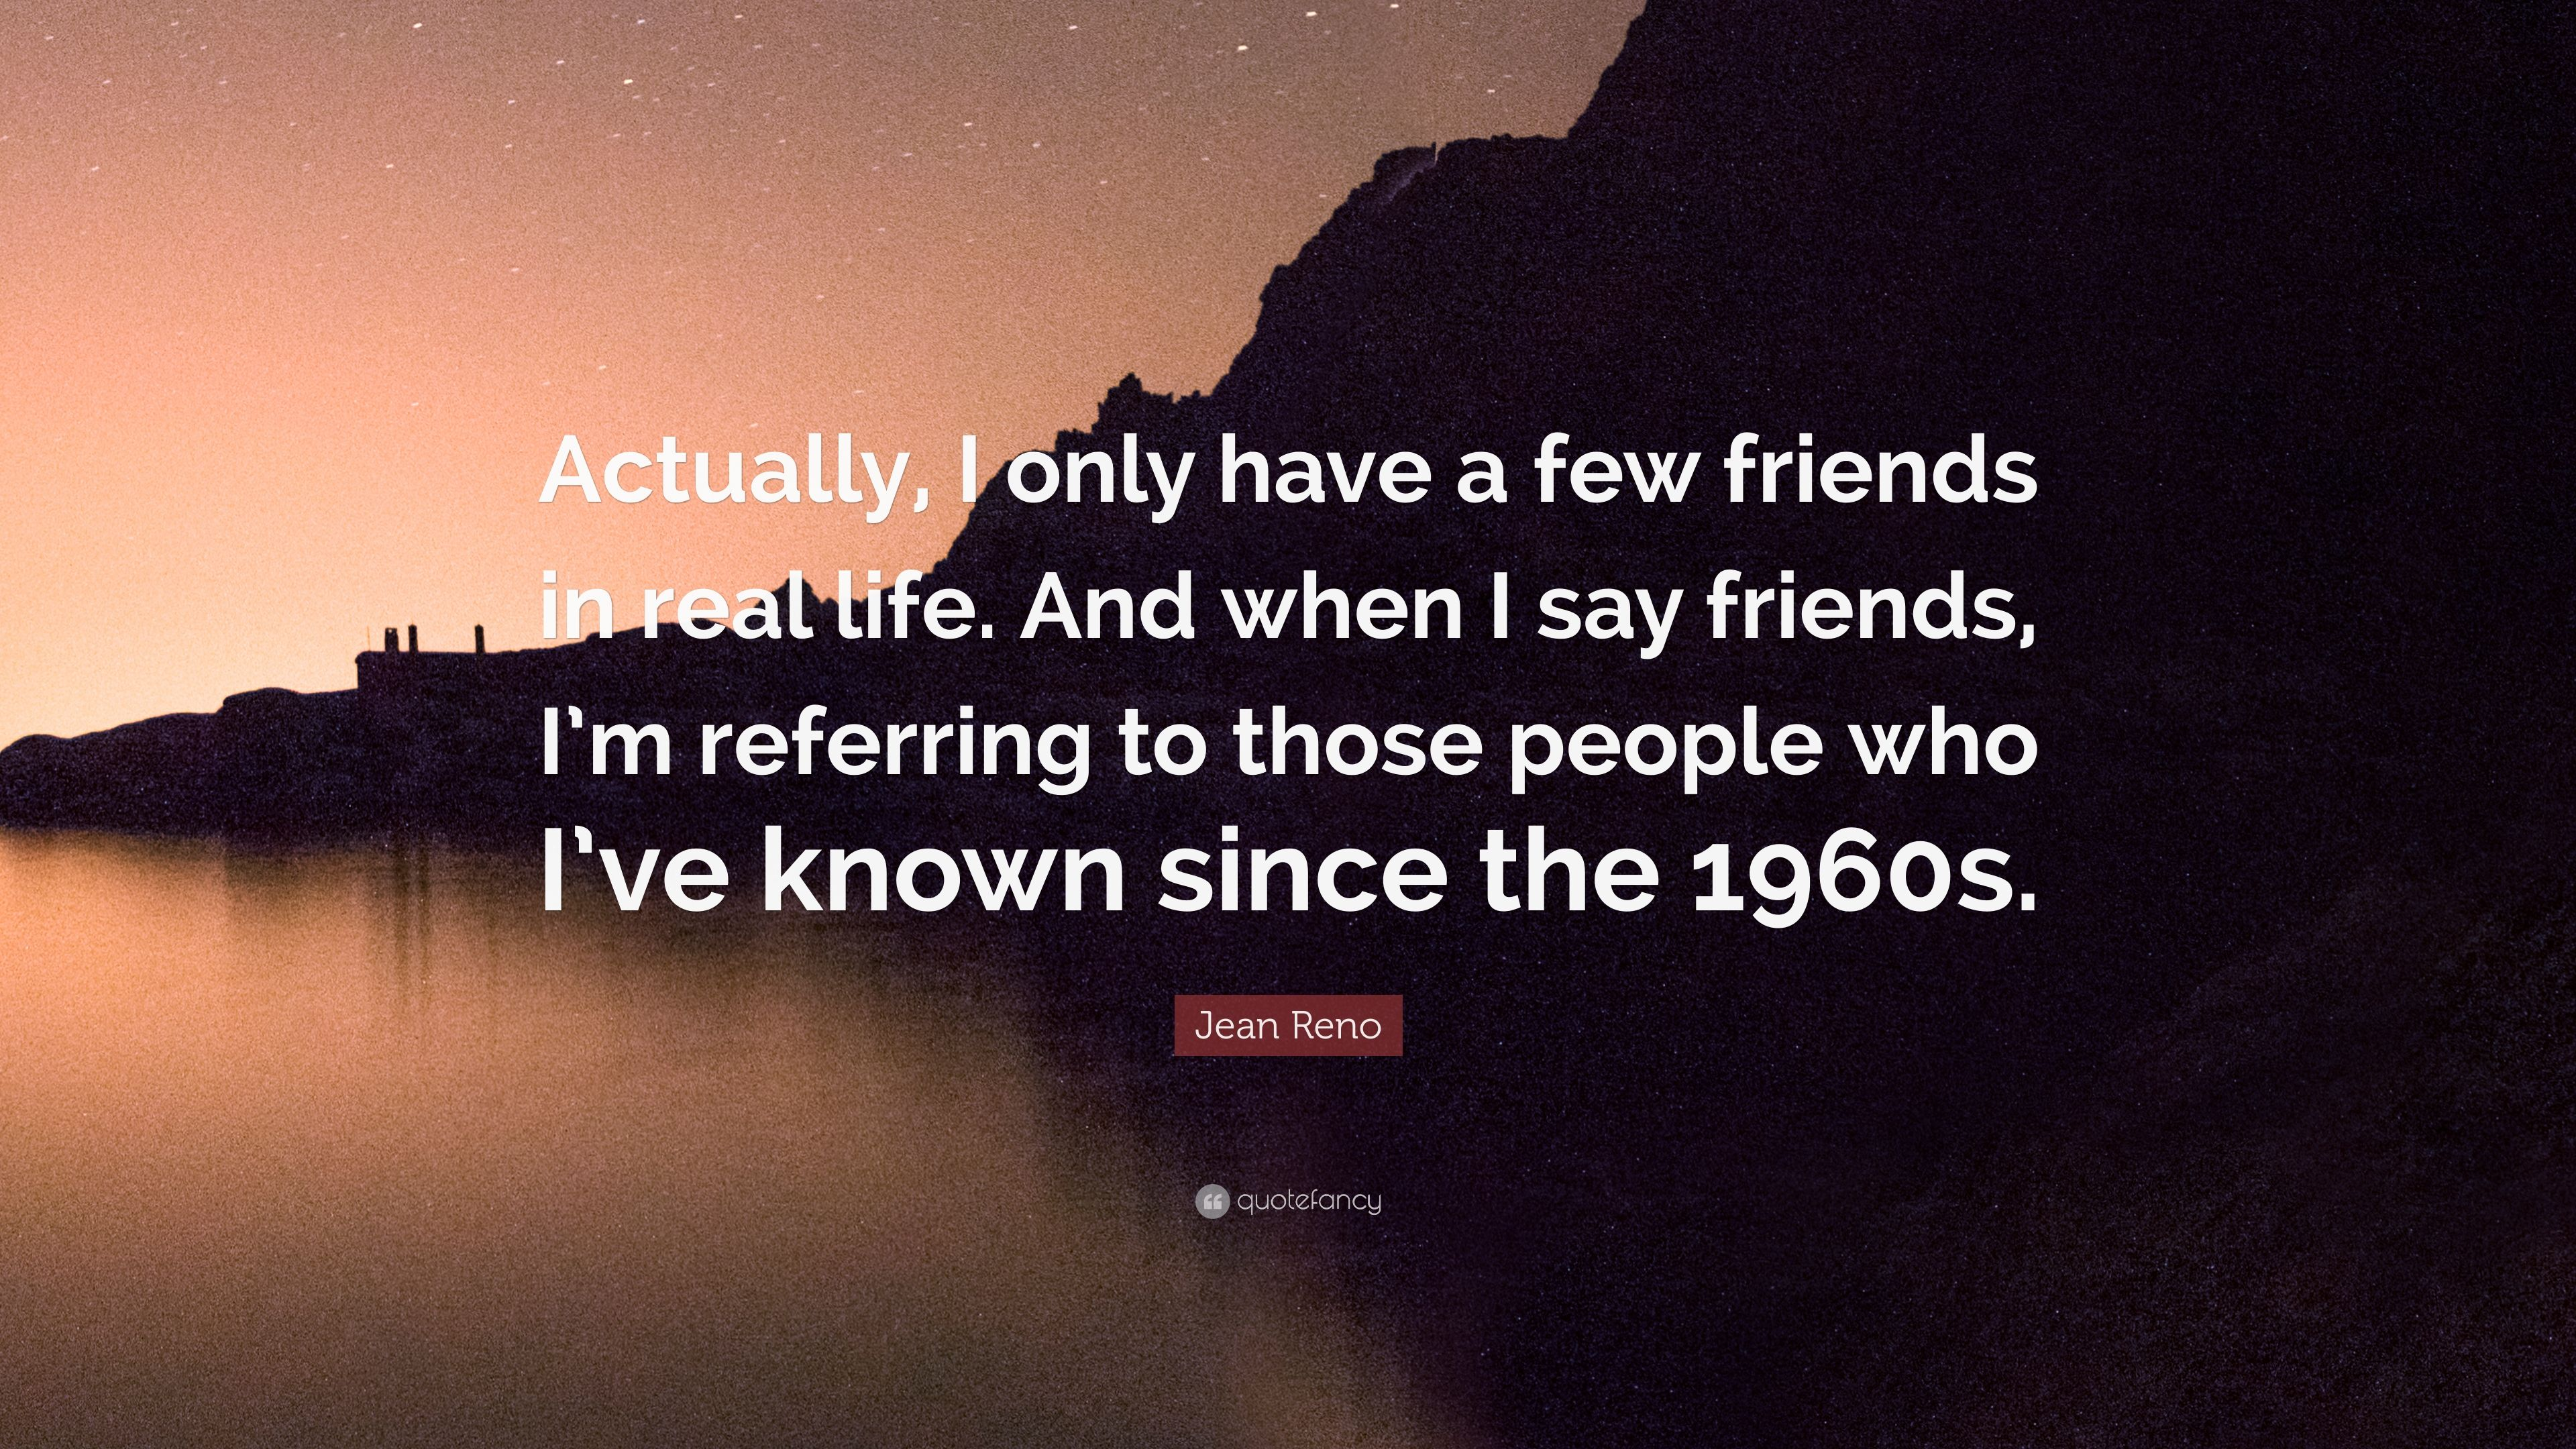 Jean Reno Quote: U201cActually, I Only Have A Few Friends In Real Life